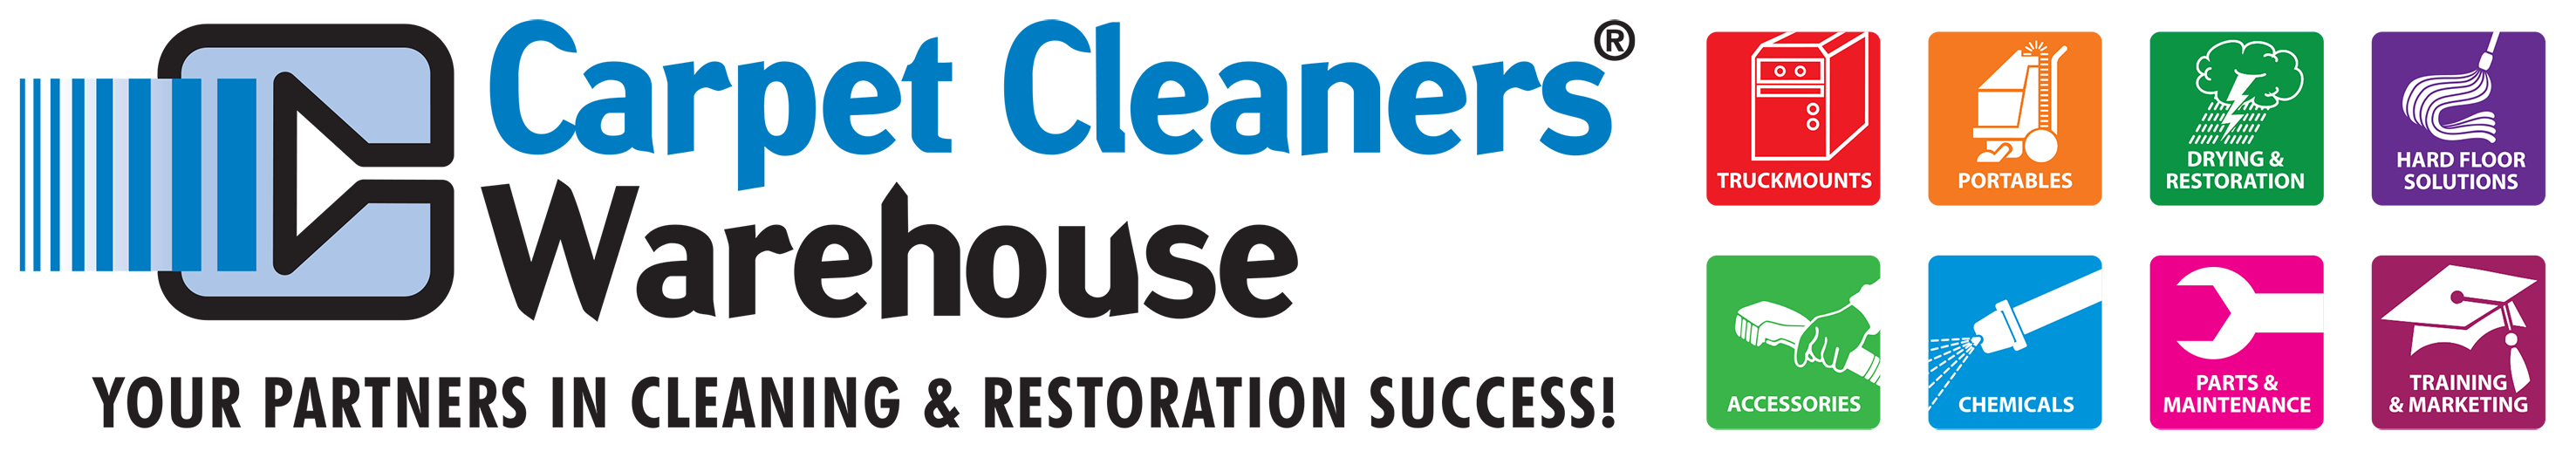 Hard Water Stain Removal Chemicals – Carpet Cleaners Warehouse